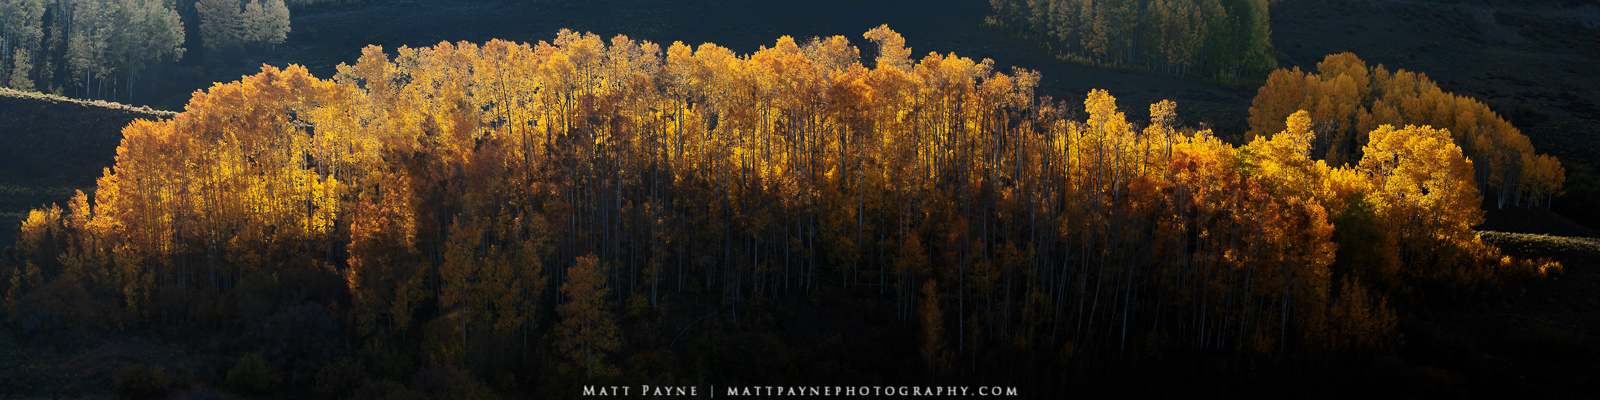 This massive panorama showcases insane detail of a beautiful stand of aspen trees illuminated by backlight in the late afternoon...